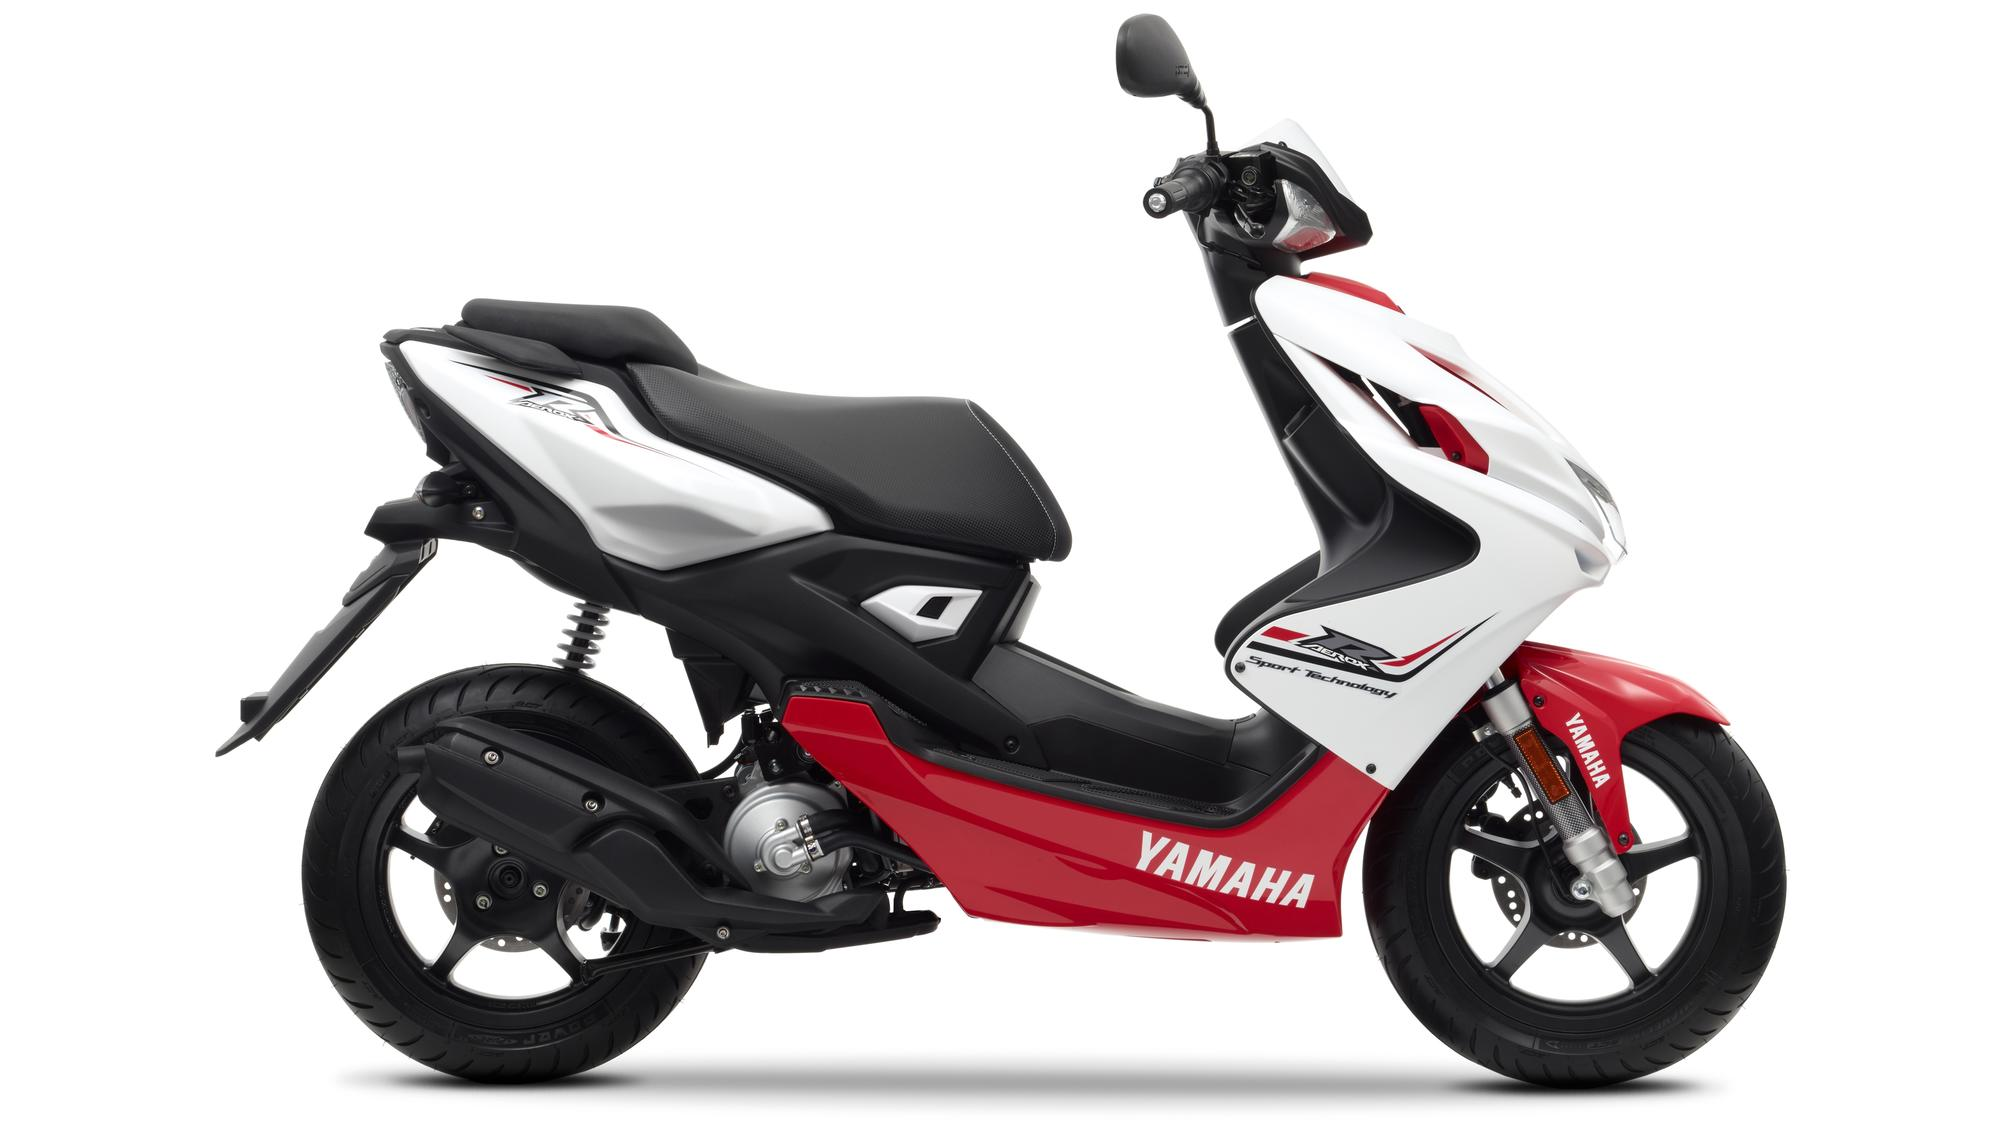 merkmale yamaha aerox r roller 50ccm zentrum berlin pictures. Black Bedroom Furniture Sets. Home Design Ideas